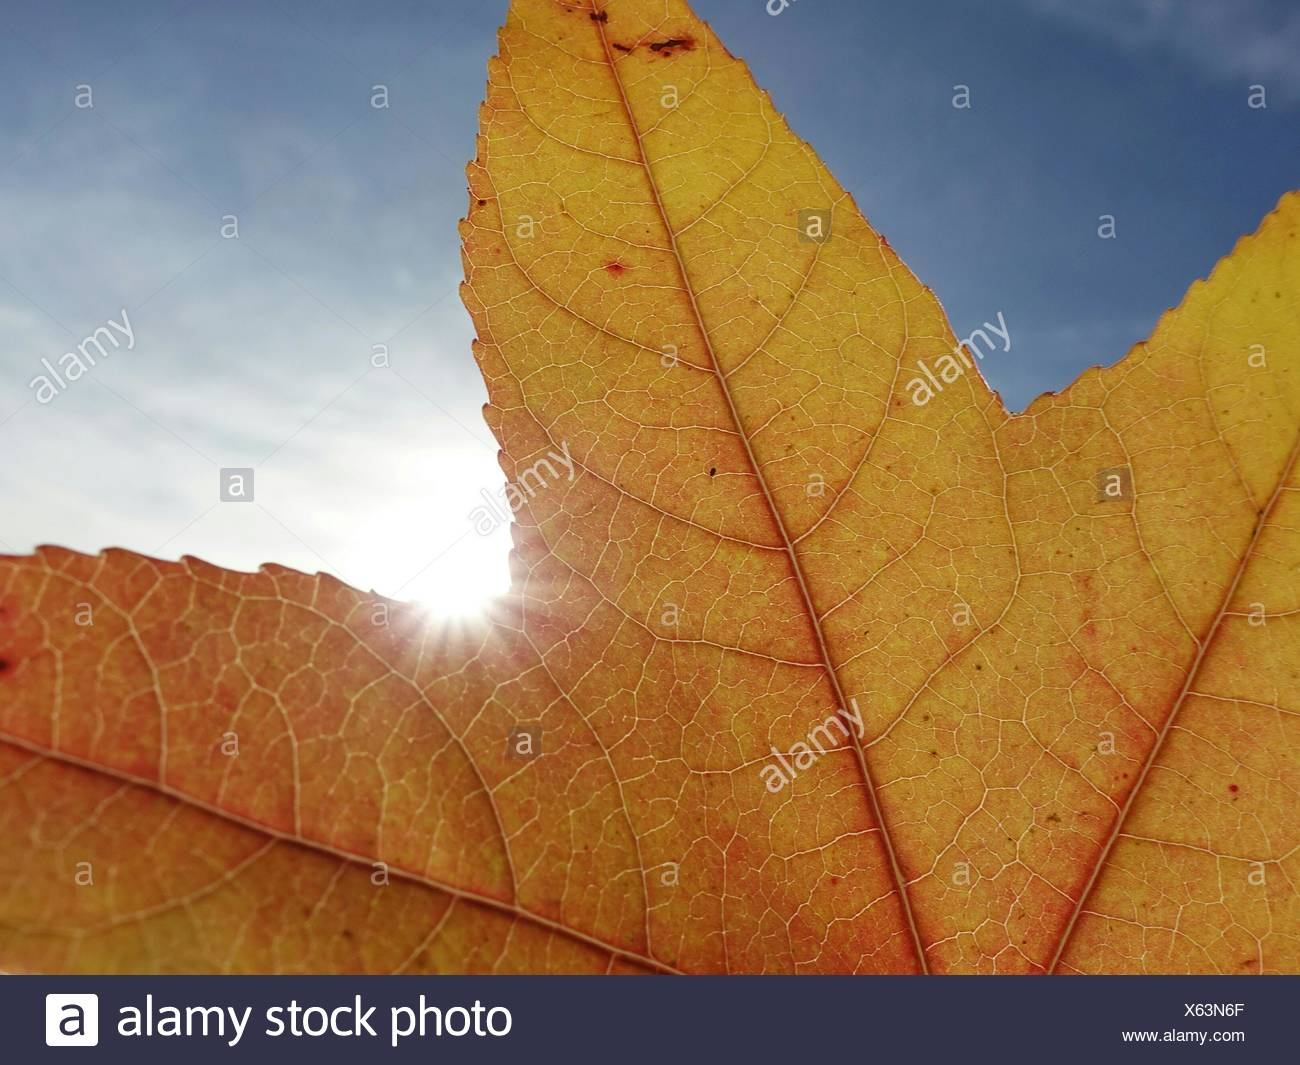 Close-Up Of Maple Leaf Against Sky - Stock Image